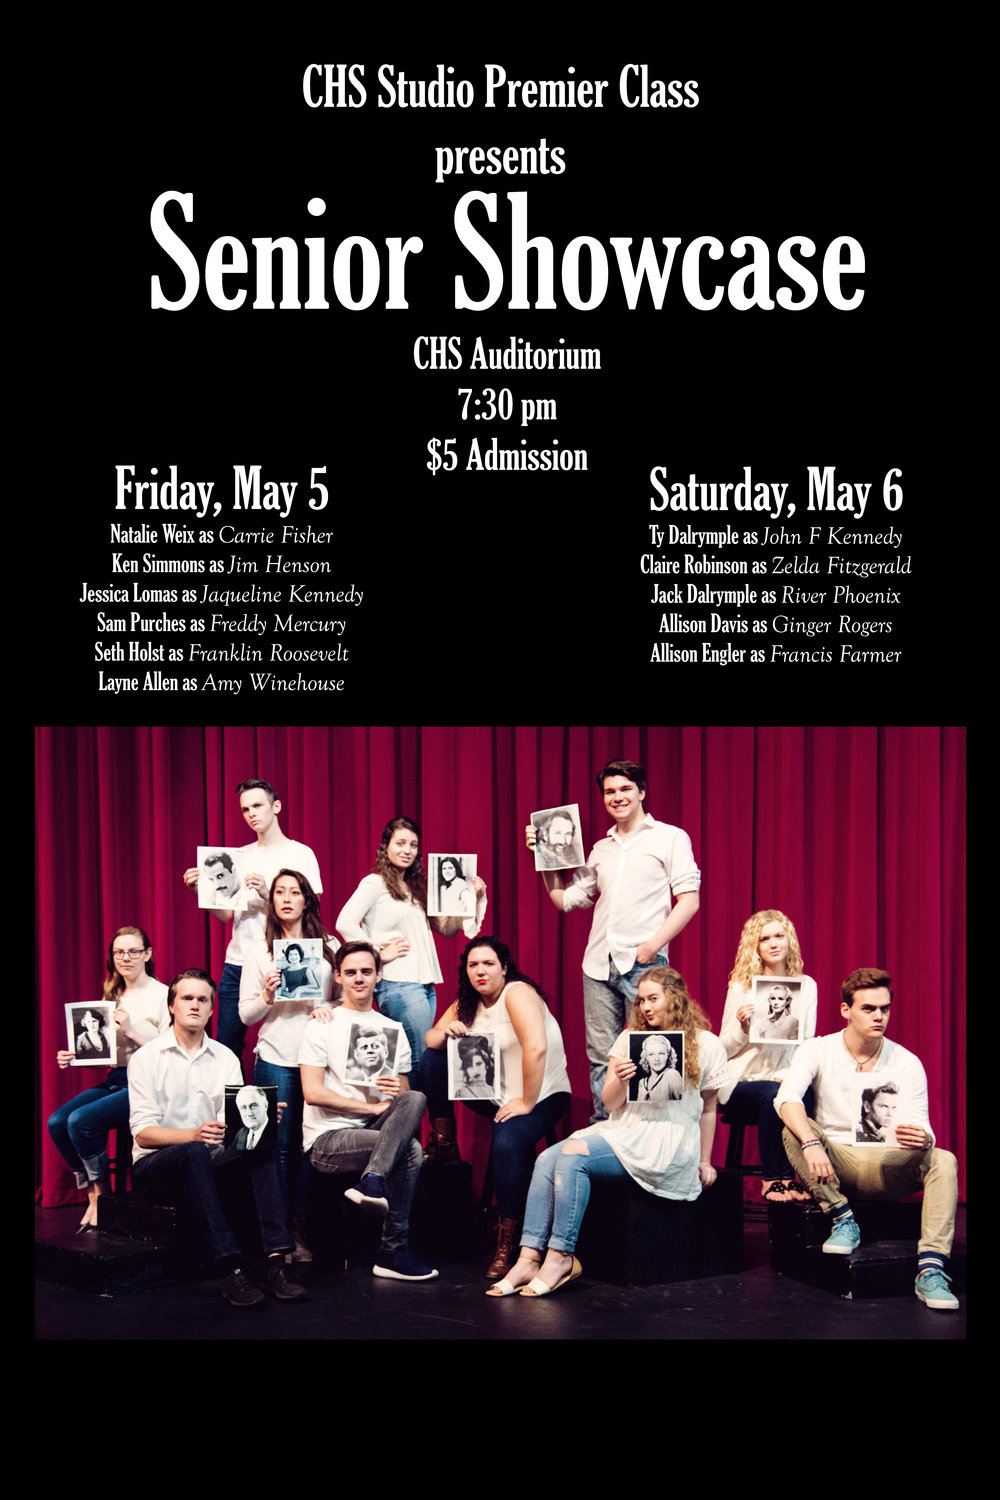 seniorshowcase.jpg